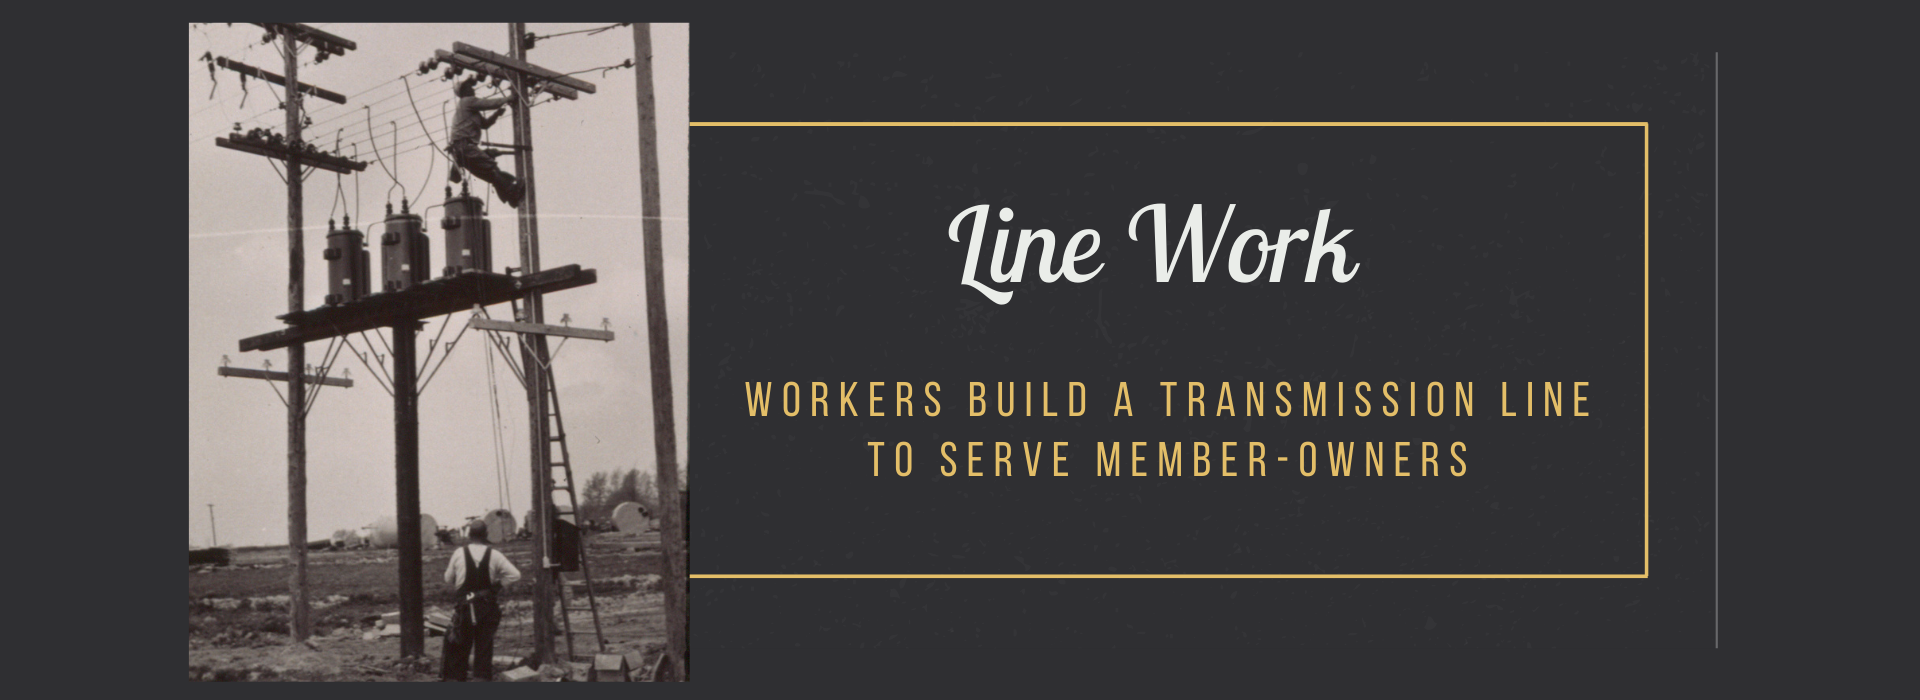 workers build a transmission line to serve member-owners